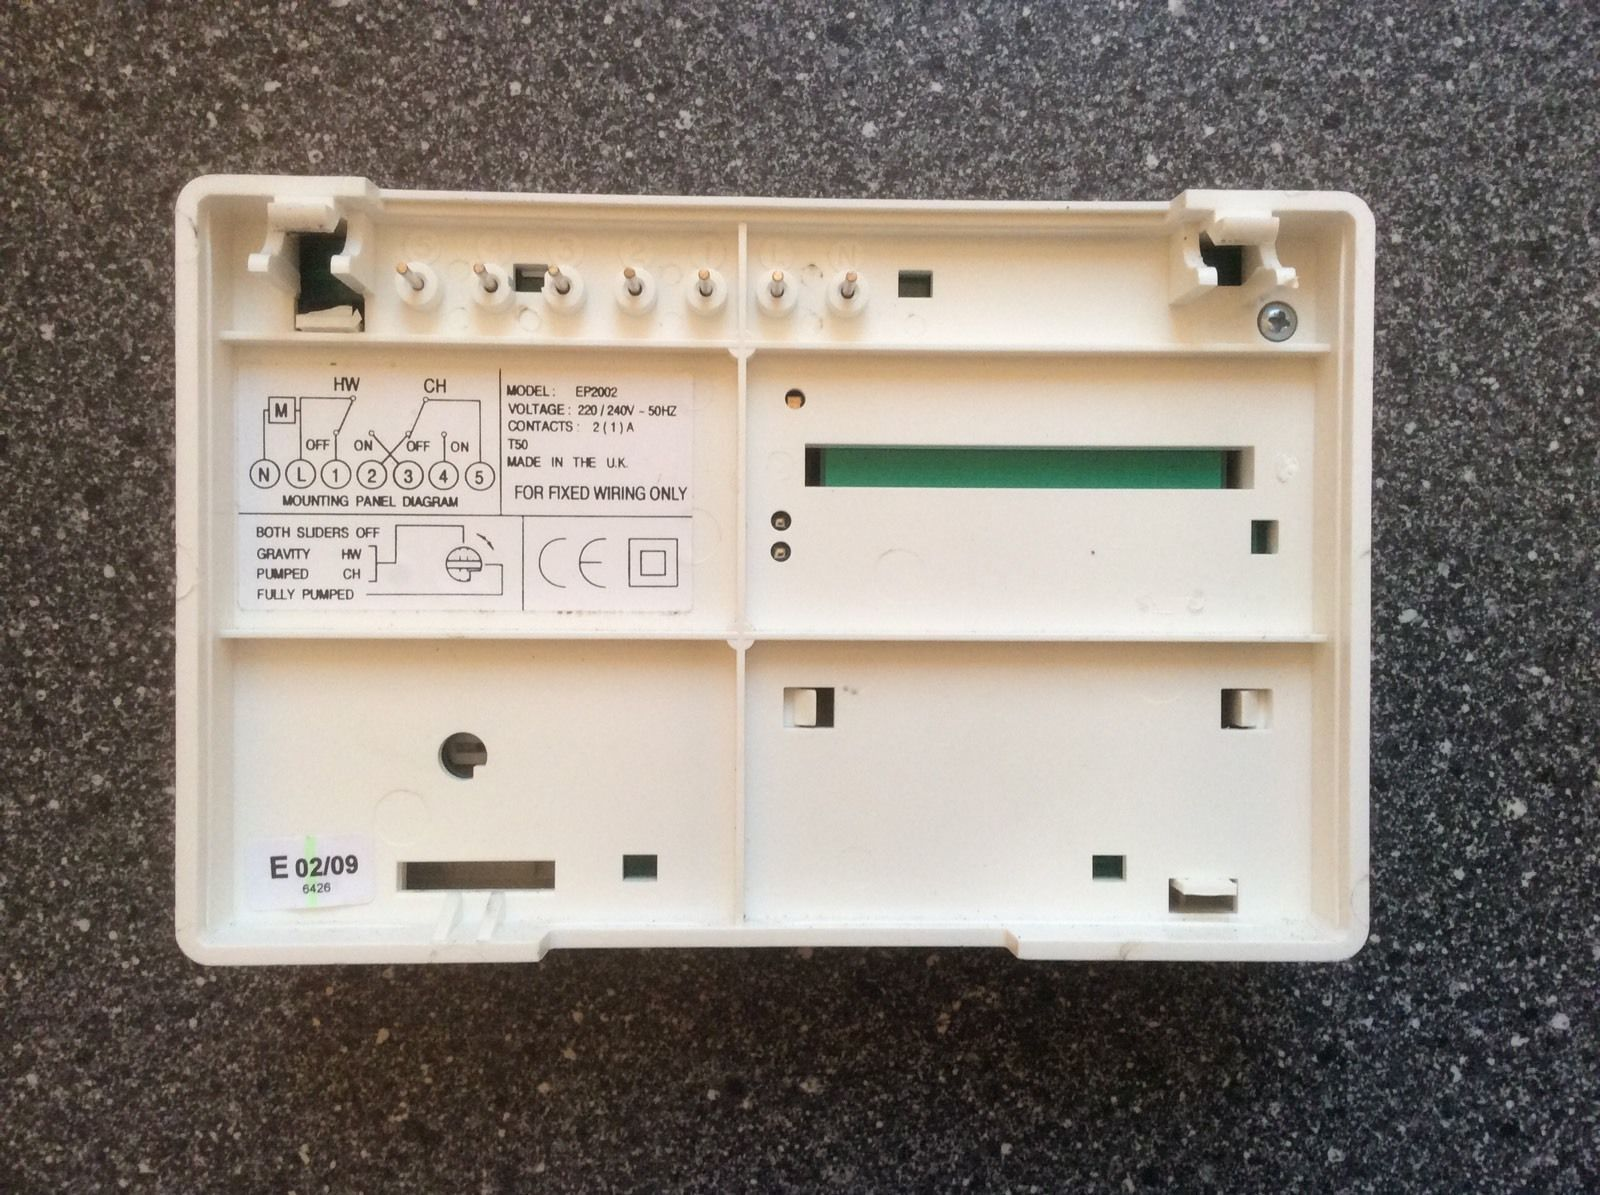 a5dfed3df72ec63d44f1b7eea08af6b1 potterton ep2002 central heating duel programmer, white ebay potterton ep2002 wiring diagram at crackthecode.co